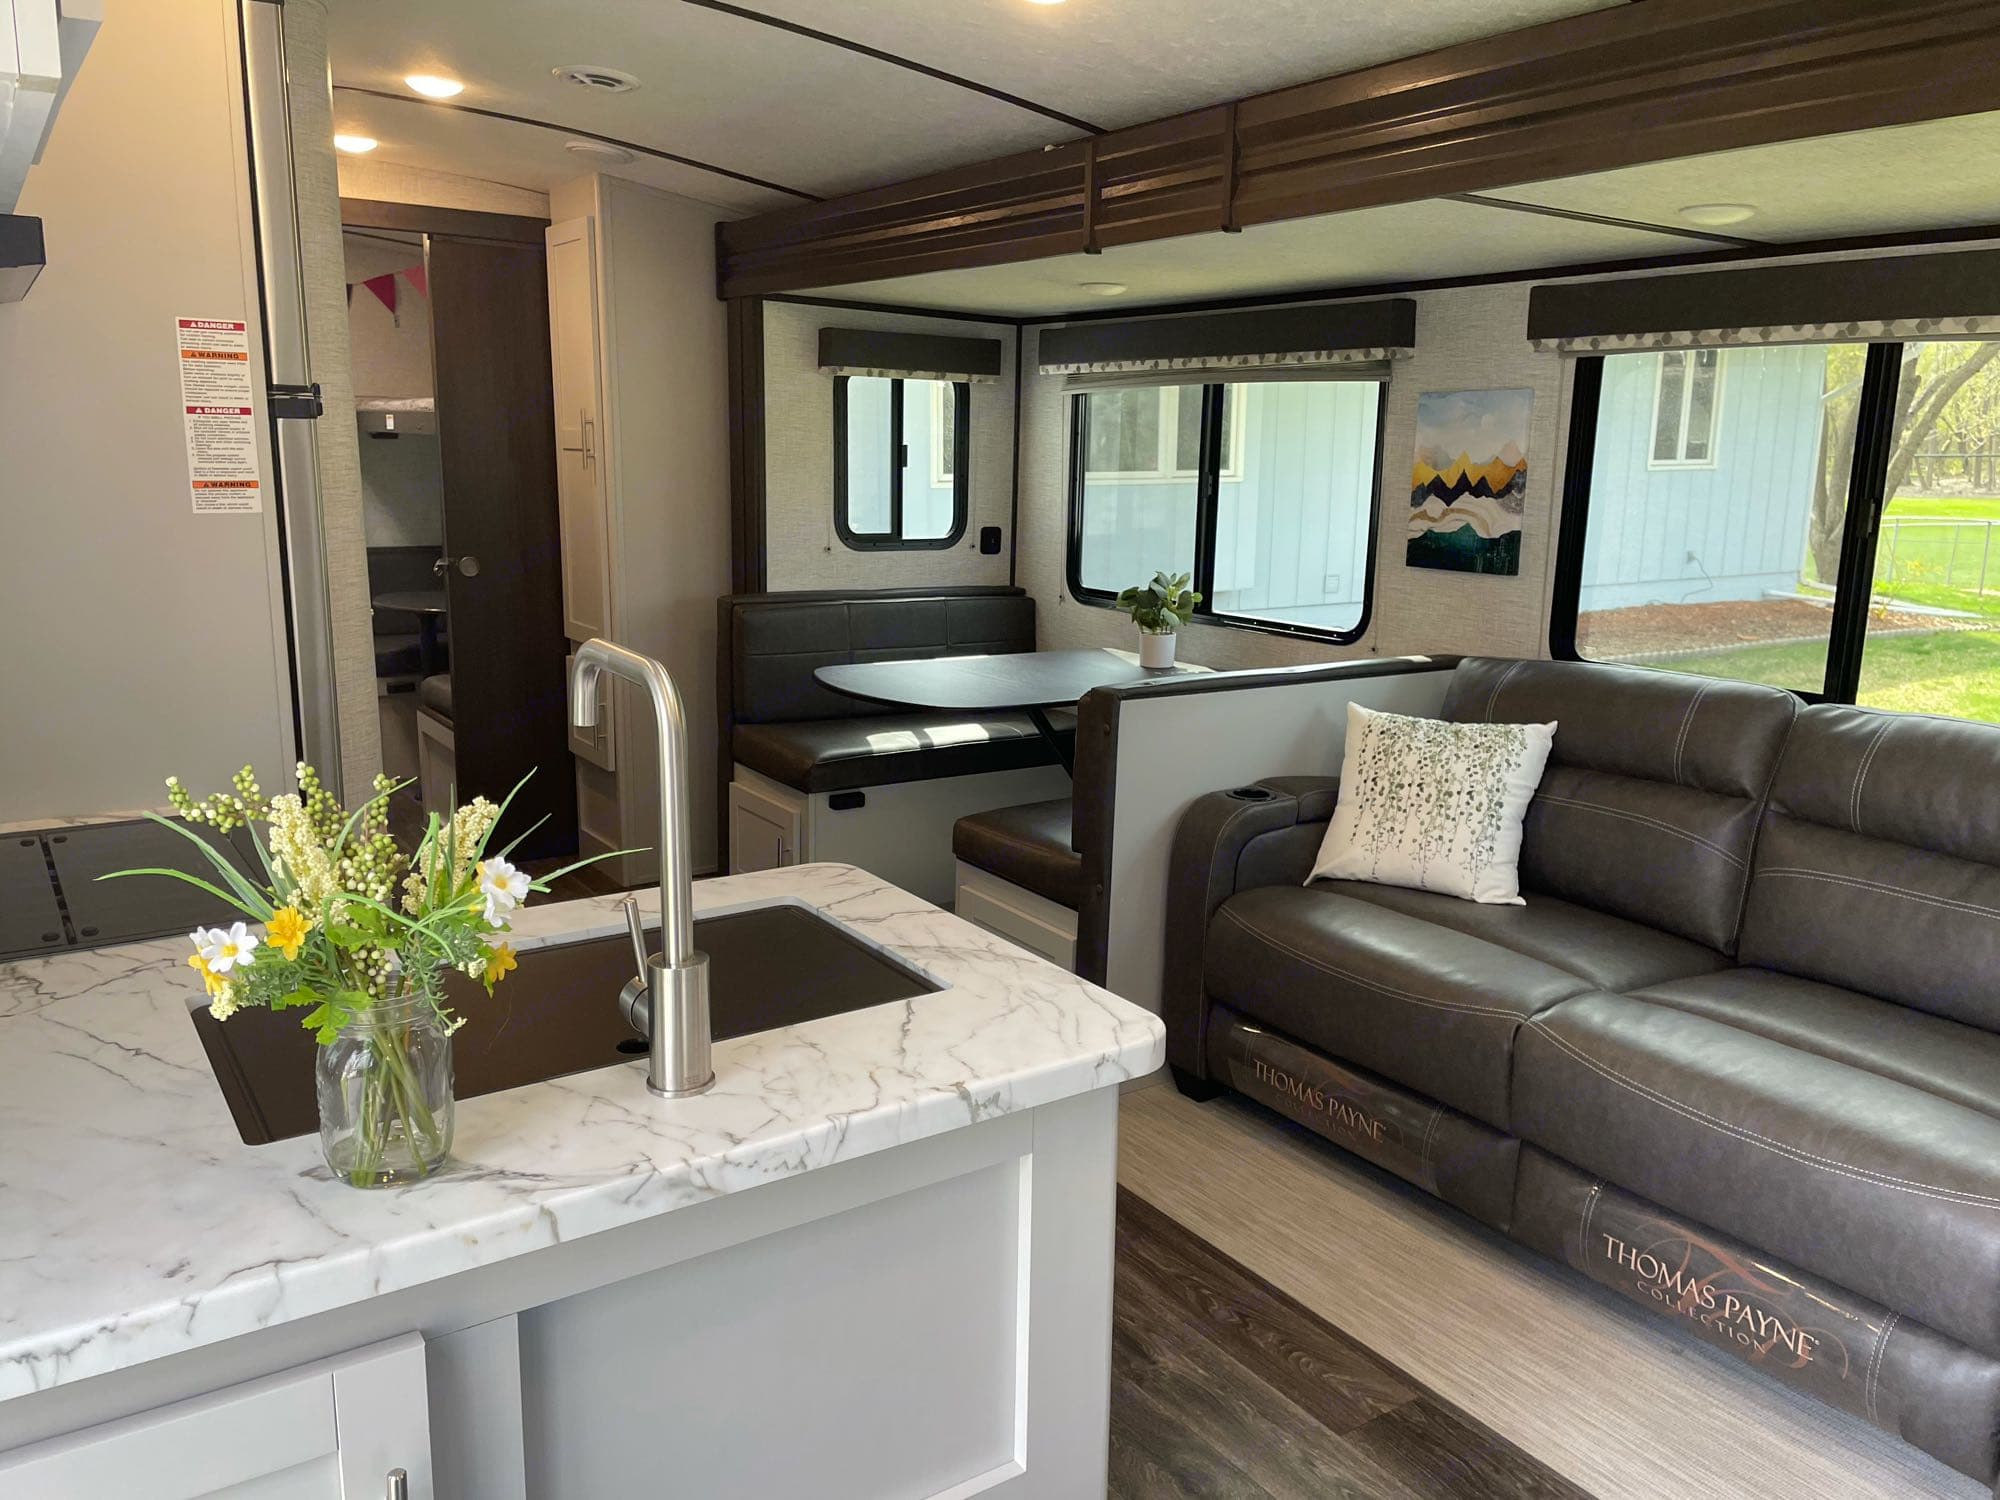 Lots of windows, bright decor, and the  high barrel ceiling make for great space when you have to be inside!. Keystone Bullet 2021